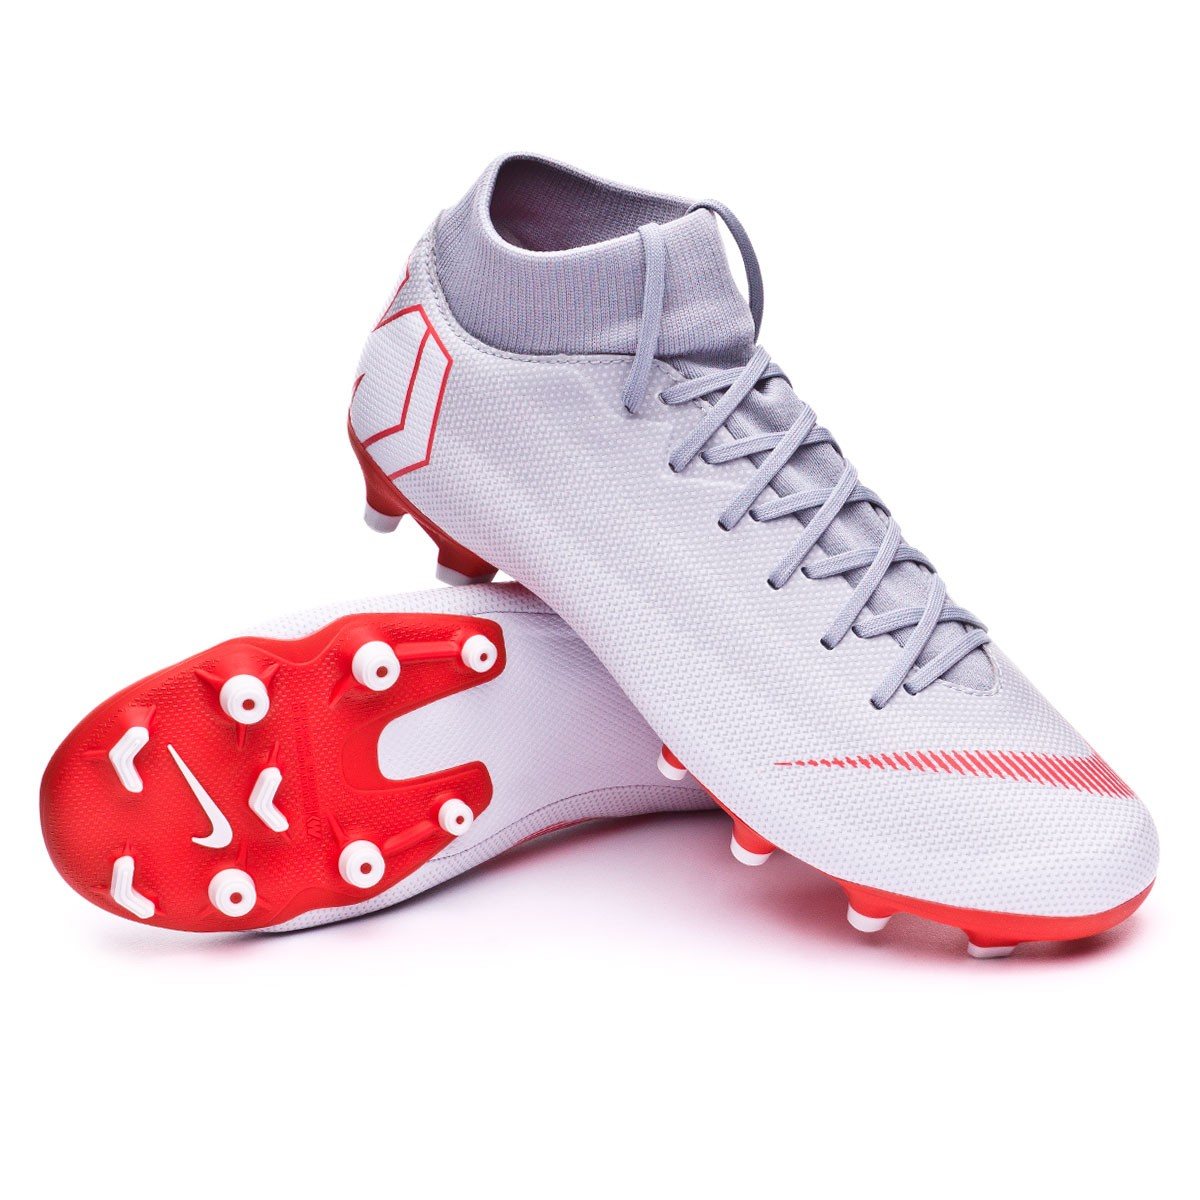 new products d01e6 1ec12 Bota Mercurial Superfly VI Academy MG Wolf grey-Light crimson-Pure platinum